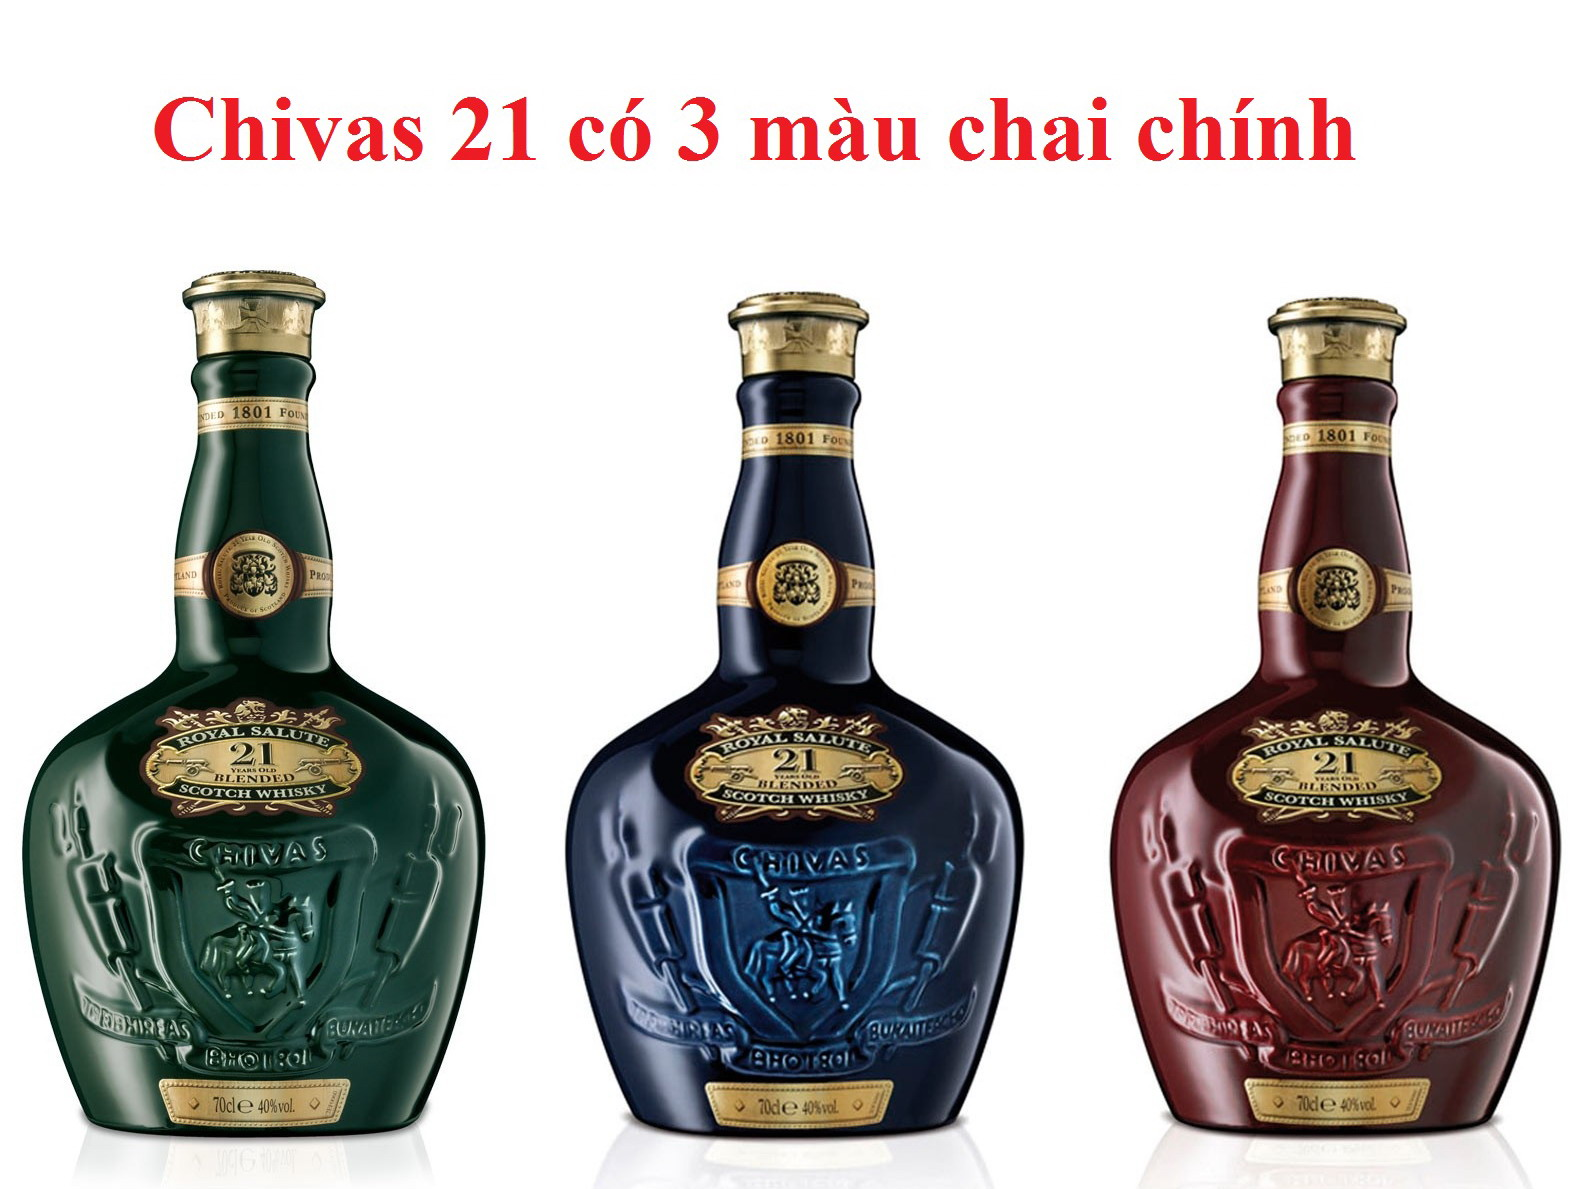 Ruou-Chivas-21-co-may-loai-may-mau-Bao-nhieu-do